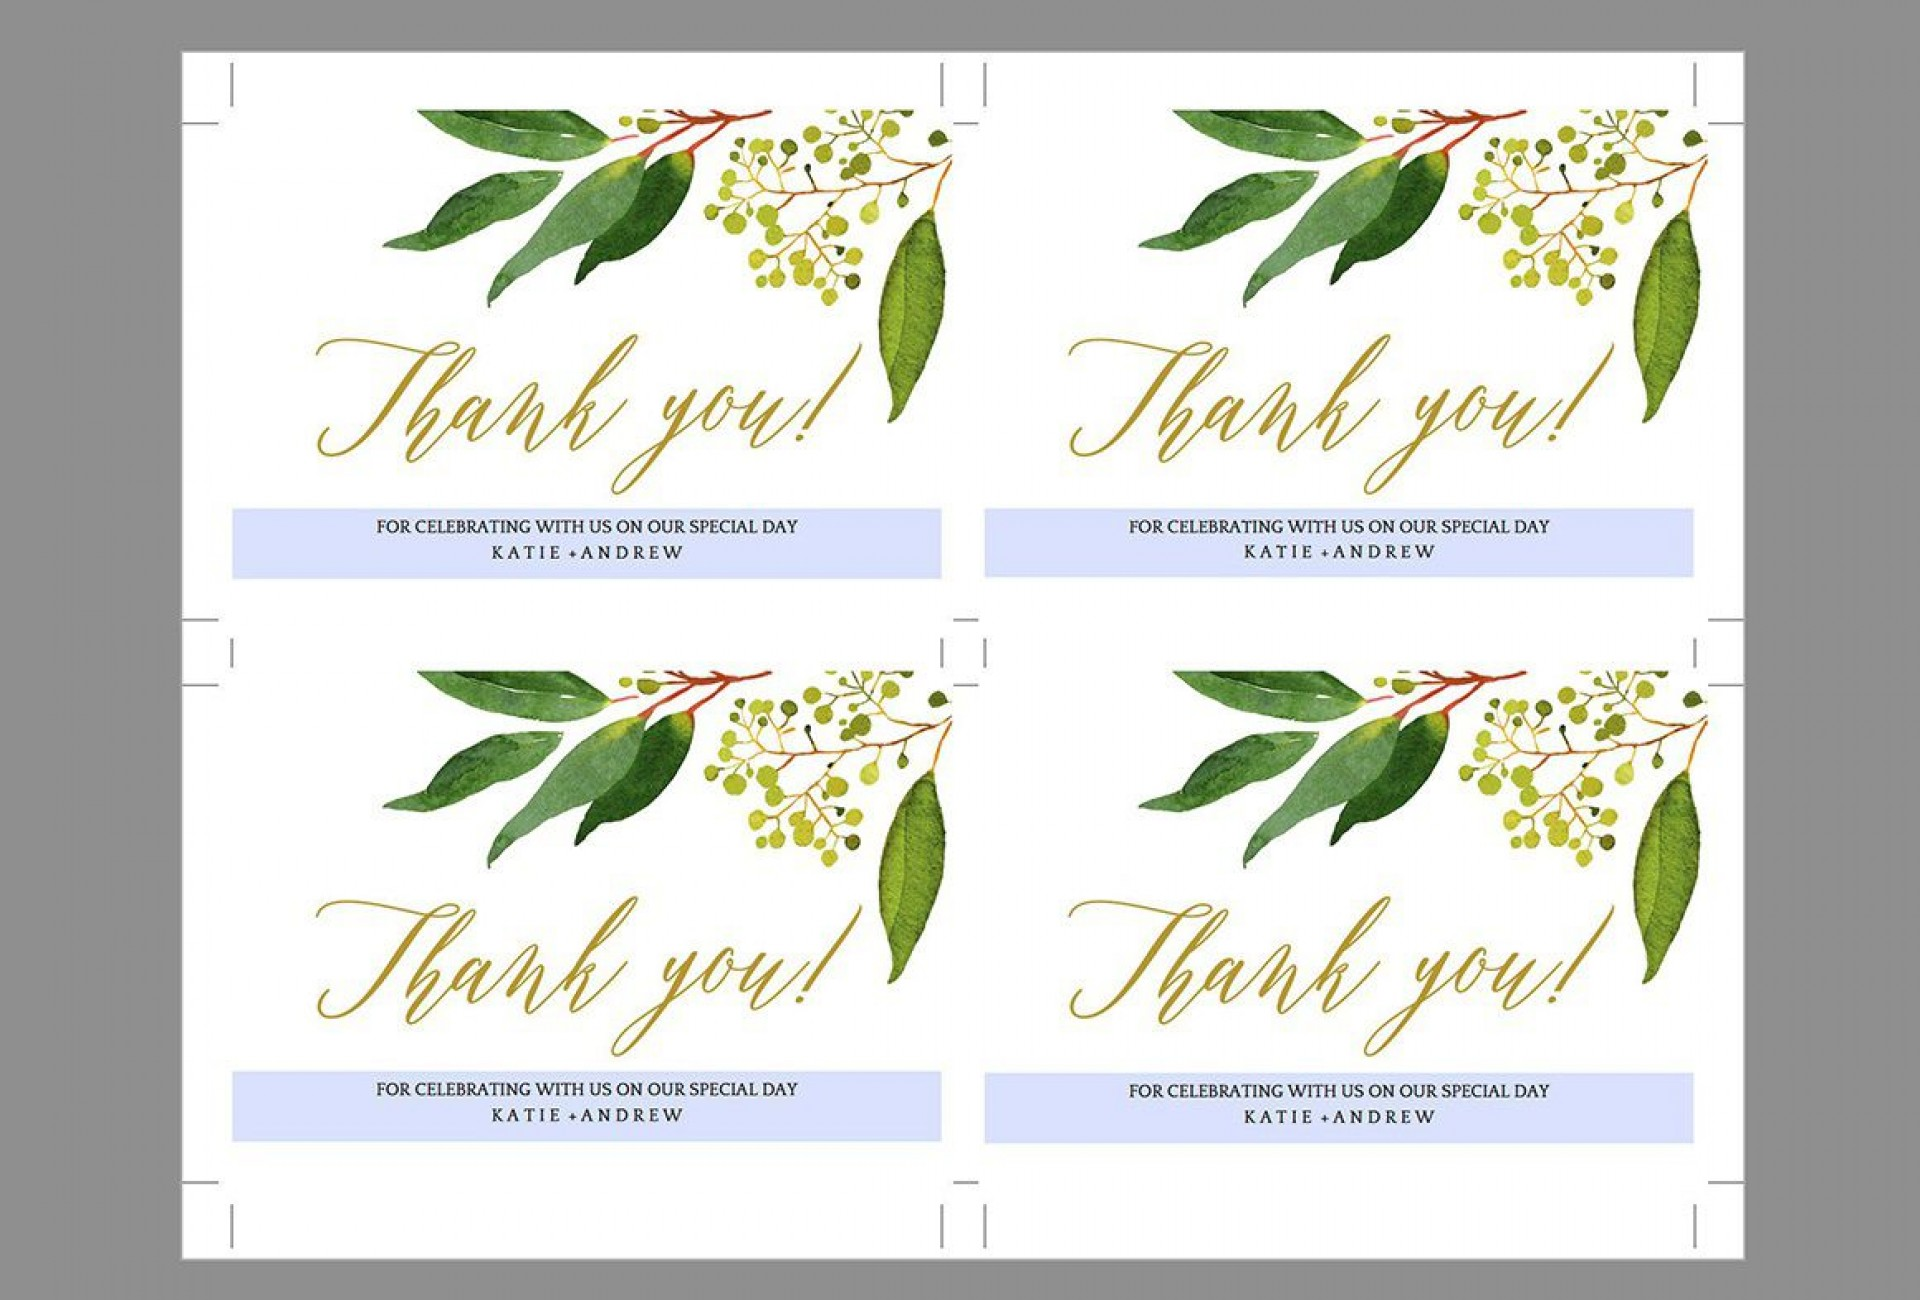 009 Shocking Wedding Thank You Card Template Inspiration  Message Sample Free Download Wording For Money1920